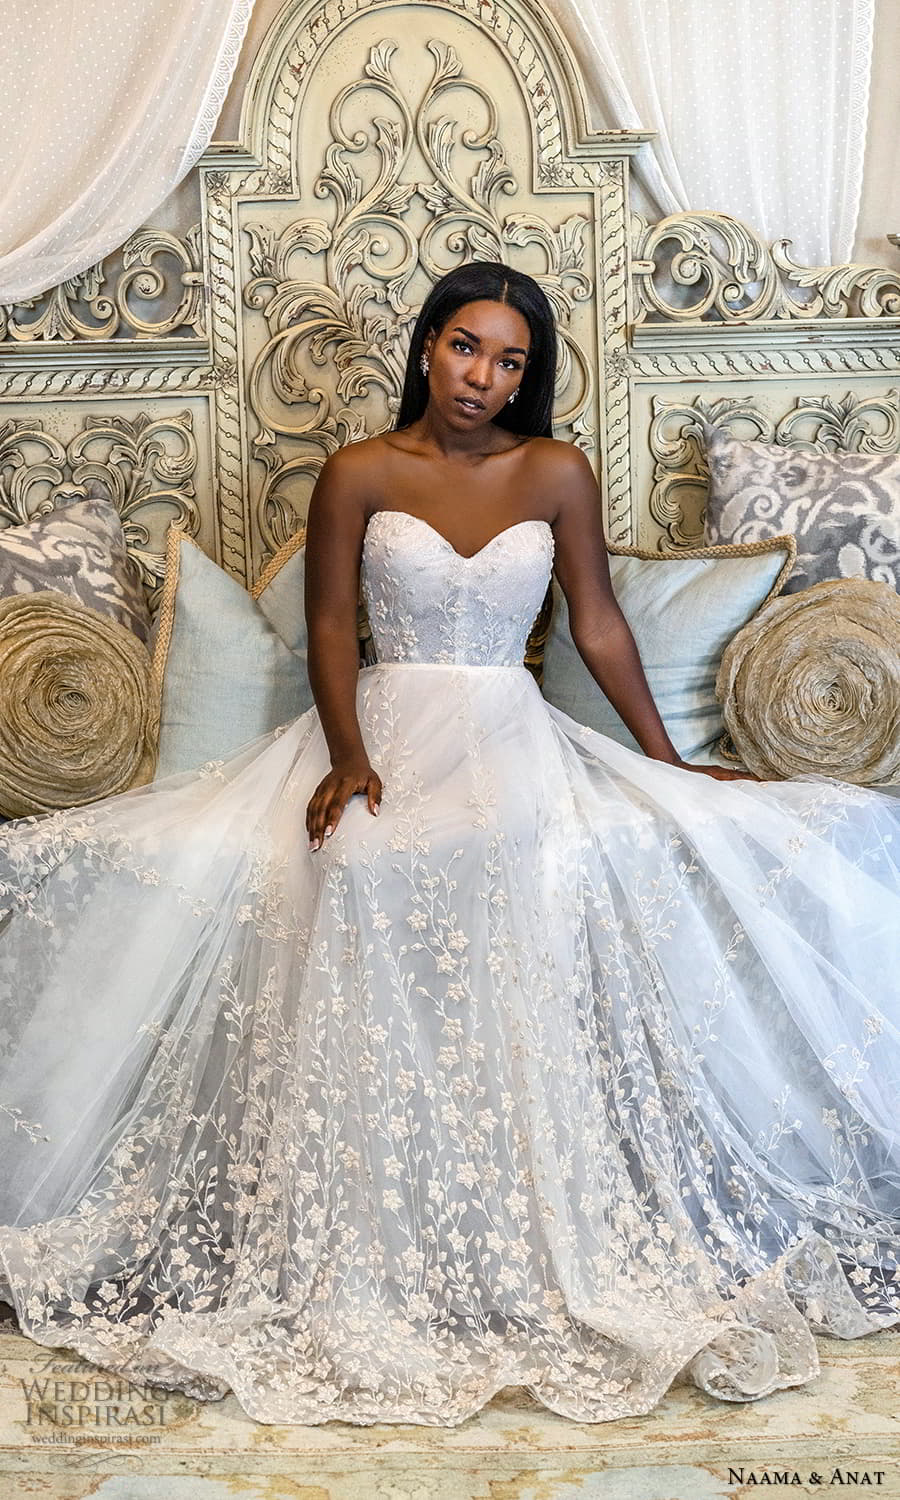 naama anat 2022 bridal straples sweetheart neckline fully embellished a line ball gown wedding dress (3) mv